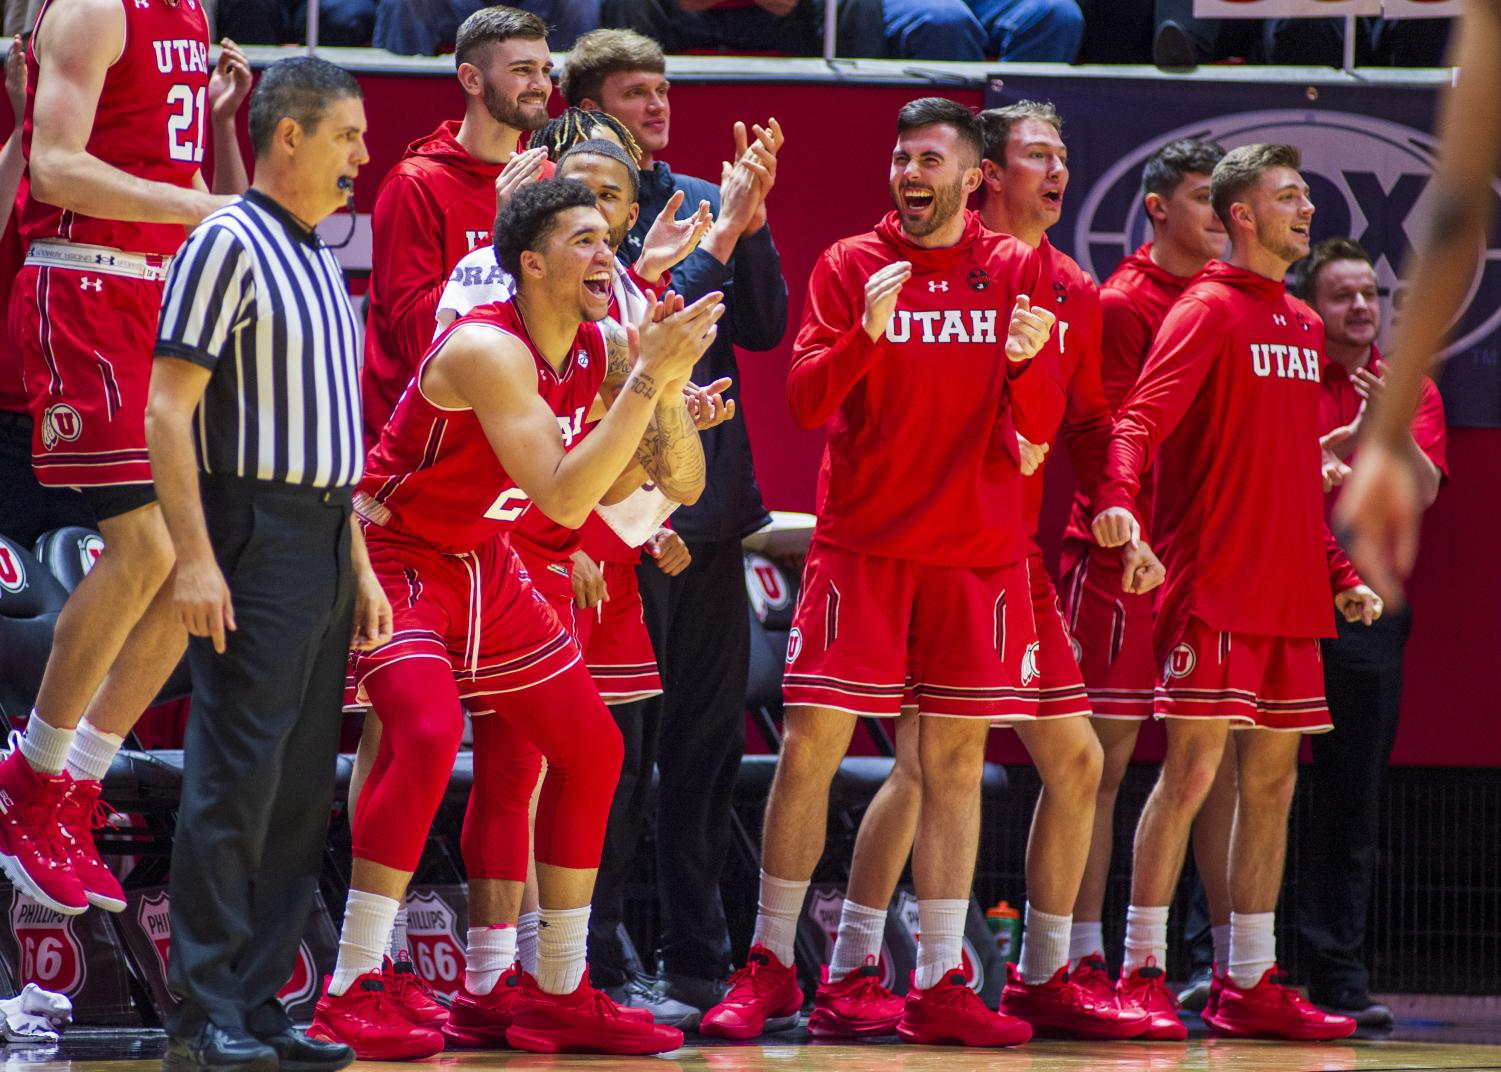 The University of Utah bench celebrates after a basket during an NCAA Basketball game vs. the USC Trojans at the Jon M. Huntsman Center in Salt Lake City, Utah on Thursday, March 7, 2019. (Photo by Kiffer Creveling | The Daily Utah Chronicle)